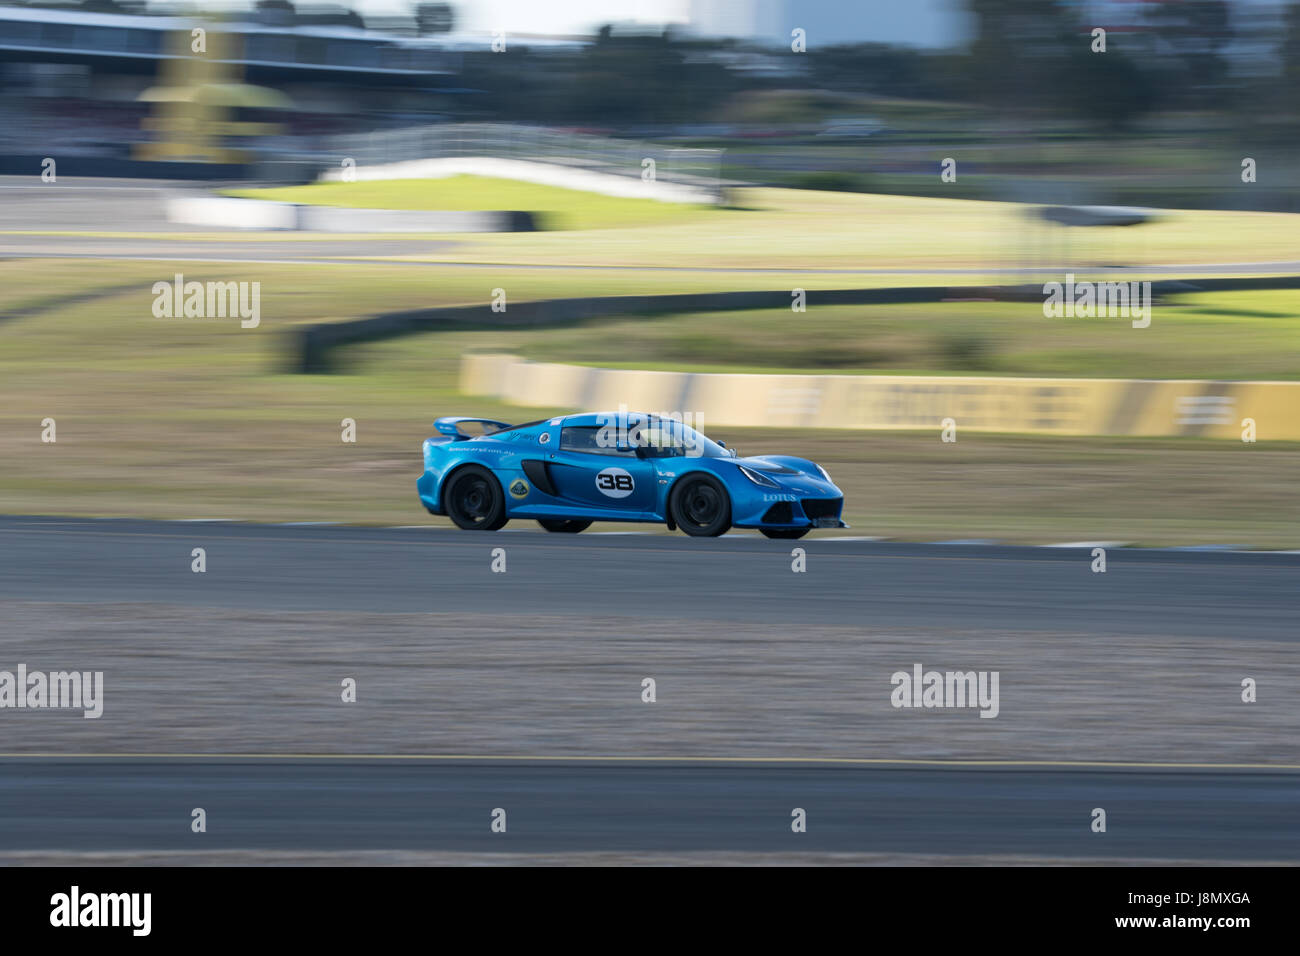 Sydney Motorsport Park, Australia. 28th May 2017.  LD Medisofts Lotus. Anthony Bolack/Alamy Live News - Stock Image